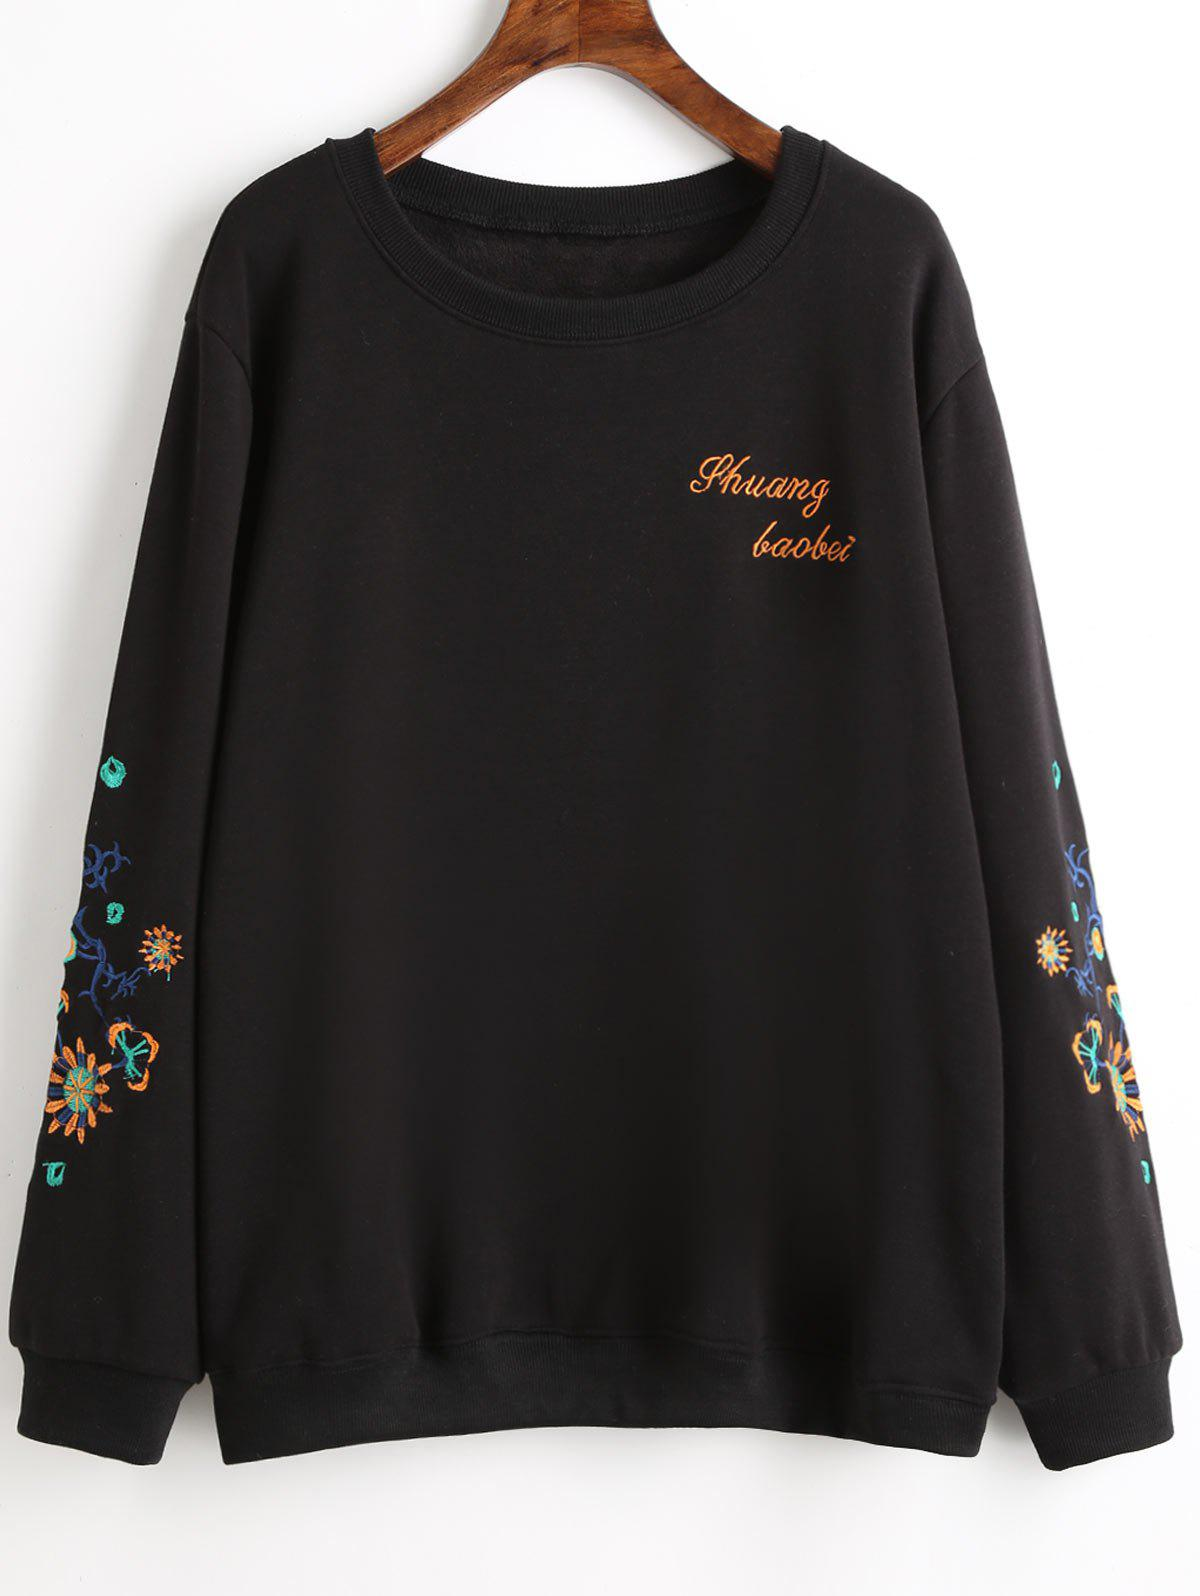 Graphic Embroidered Plus Size Fleece Lined Sweatshirt - BLACK 3XL